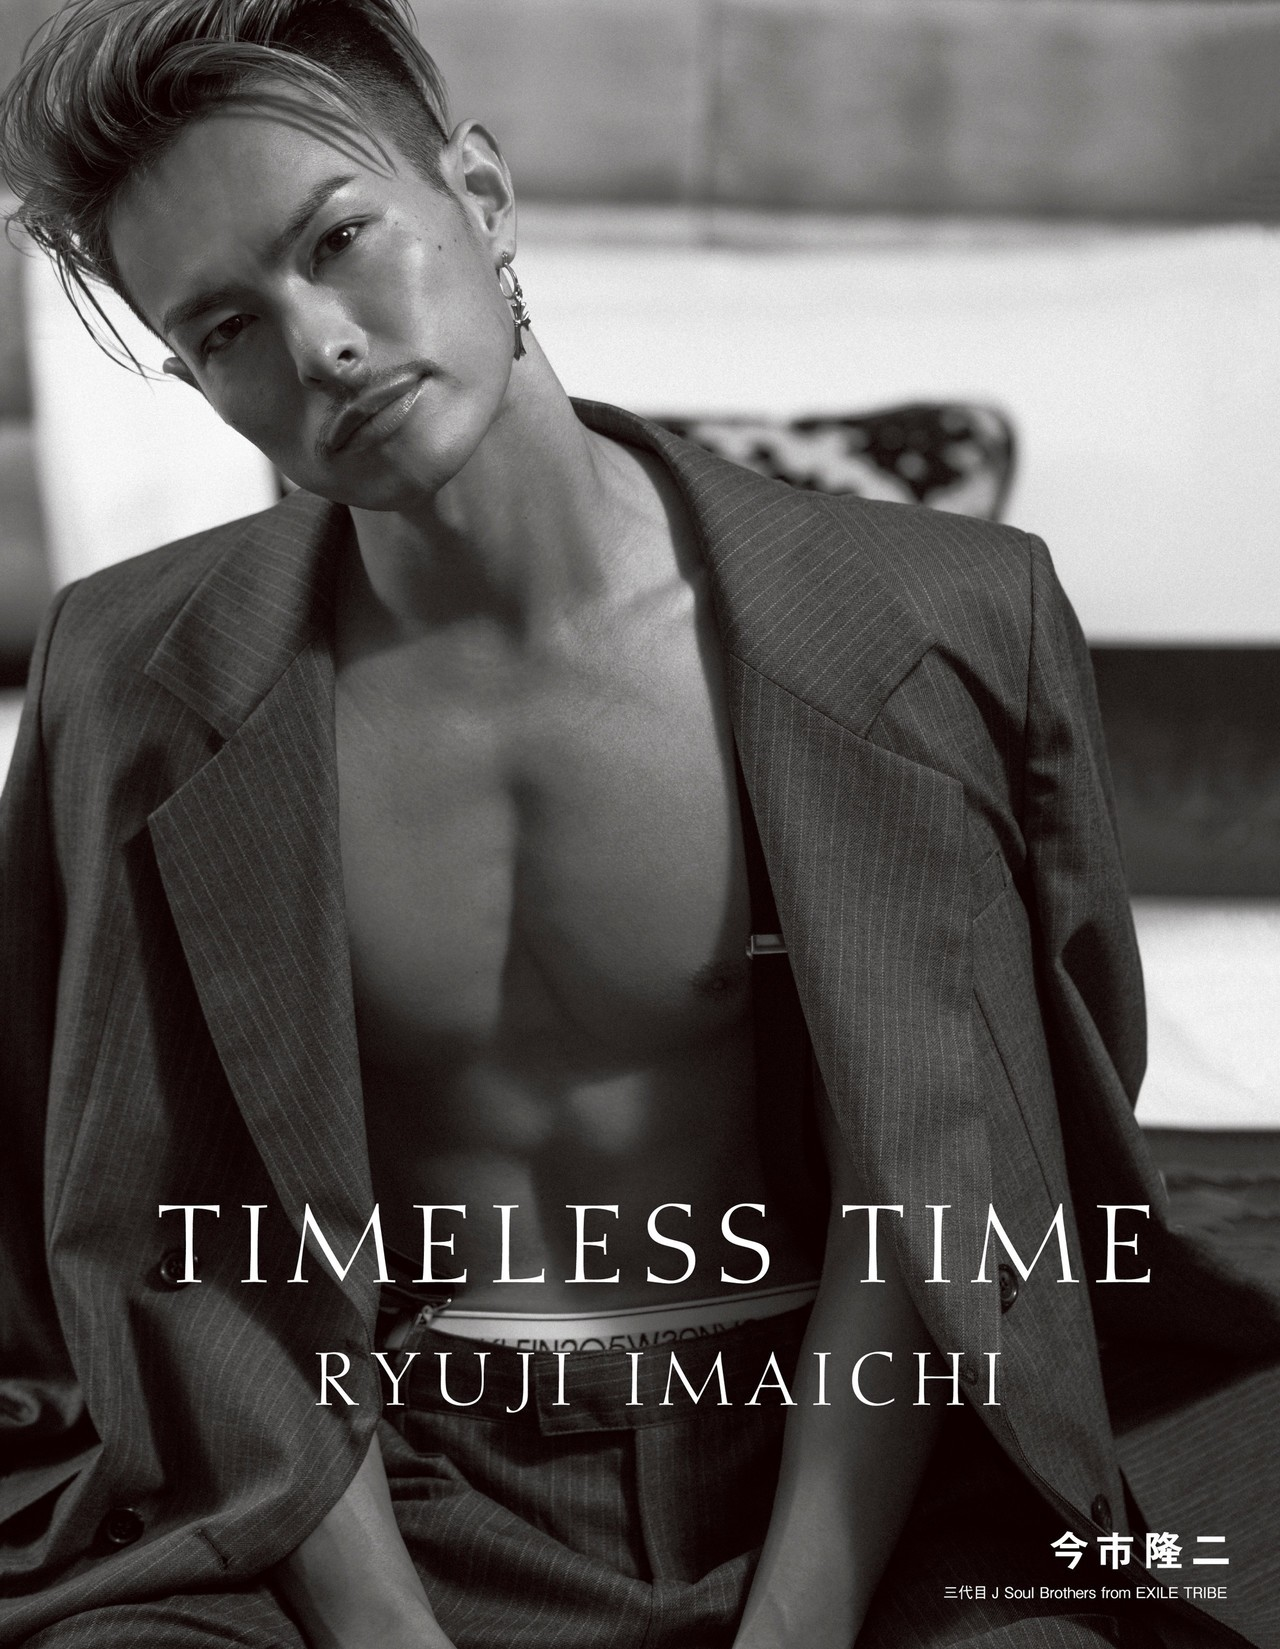 『TIMELESS TIME』(タイムレス・タイム) 幻冬舎